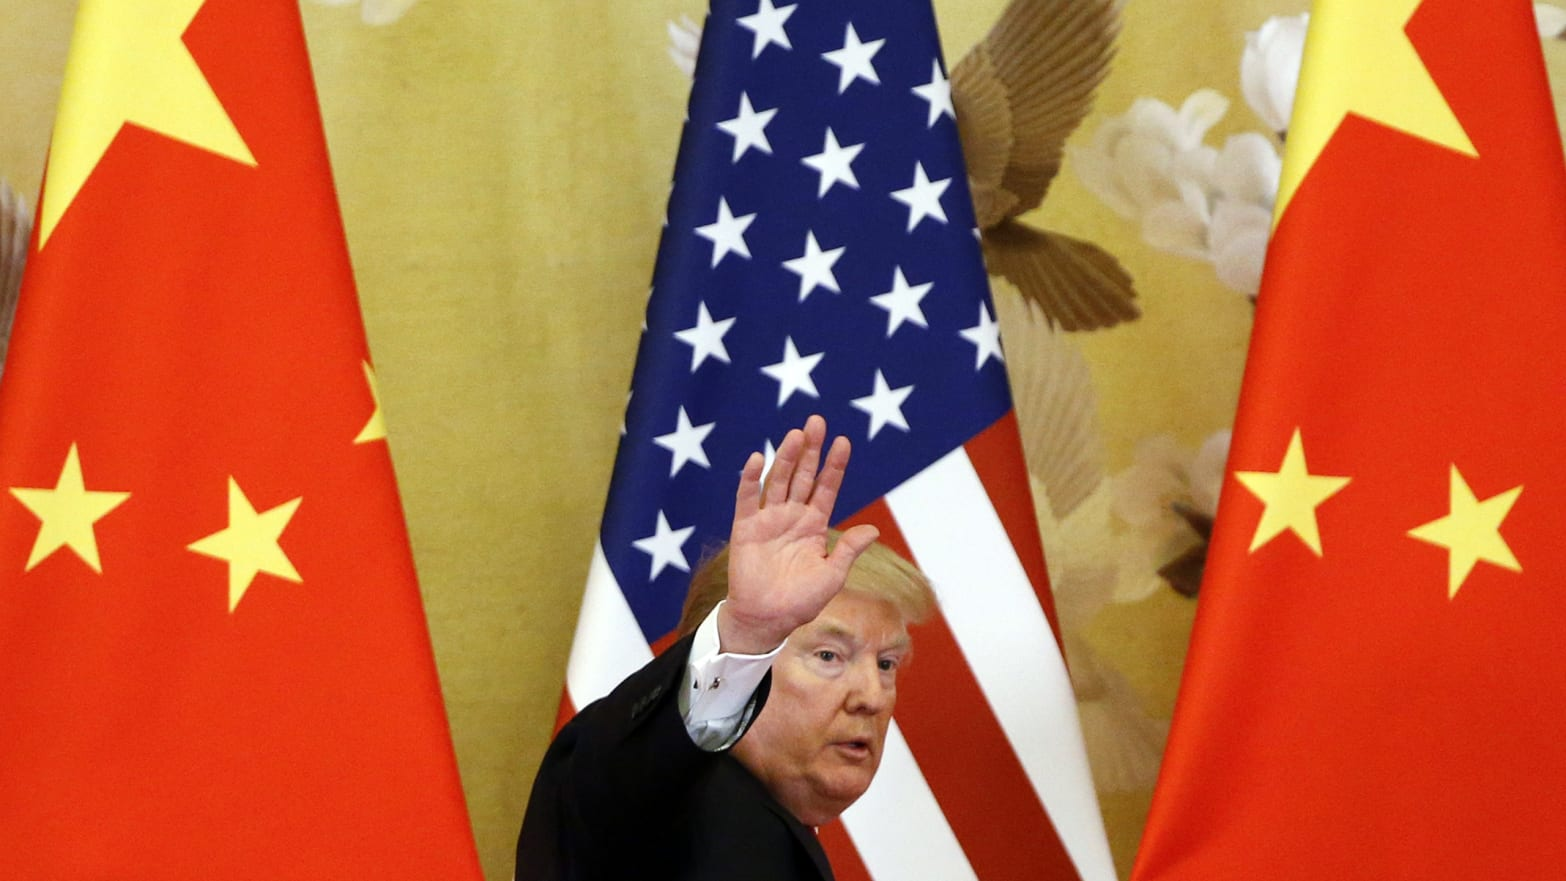 U.S. President Donald Trump and China's President Xi Jinping (not shown) make a joint statement at the Great Hall of the People on November 9, 2017 in Beijing, China. Trump is on a 10-day trip to Asia.